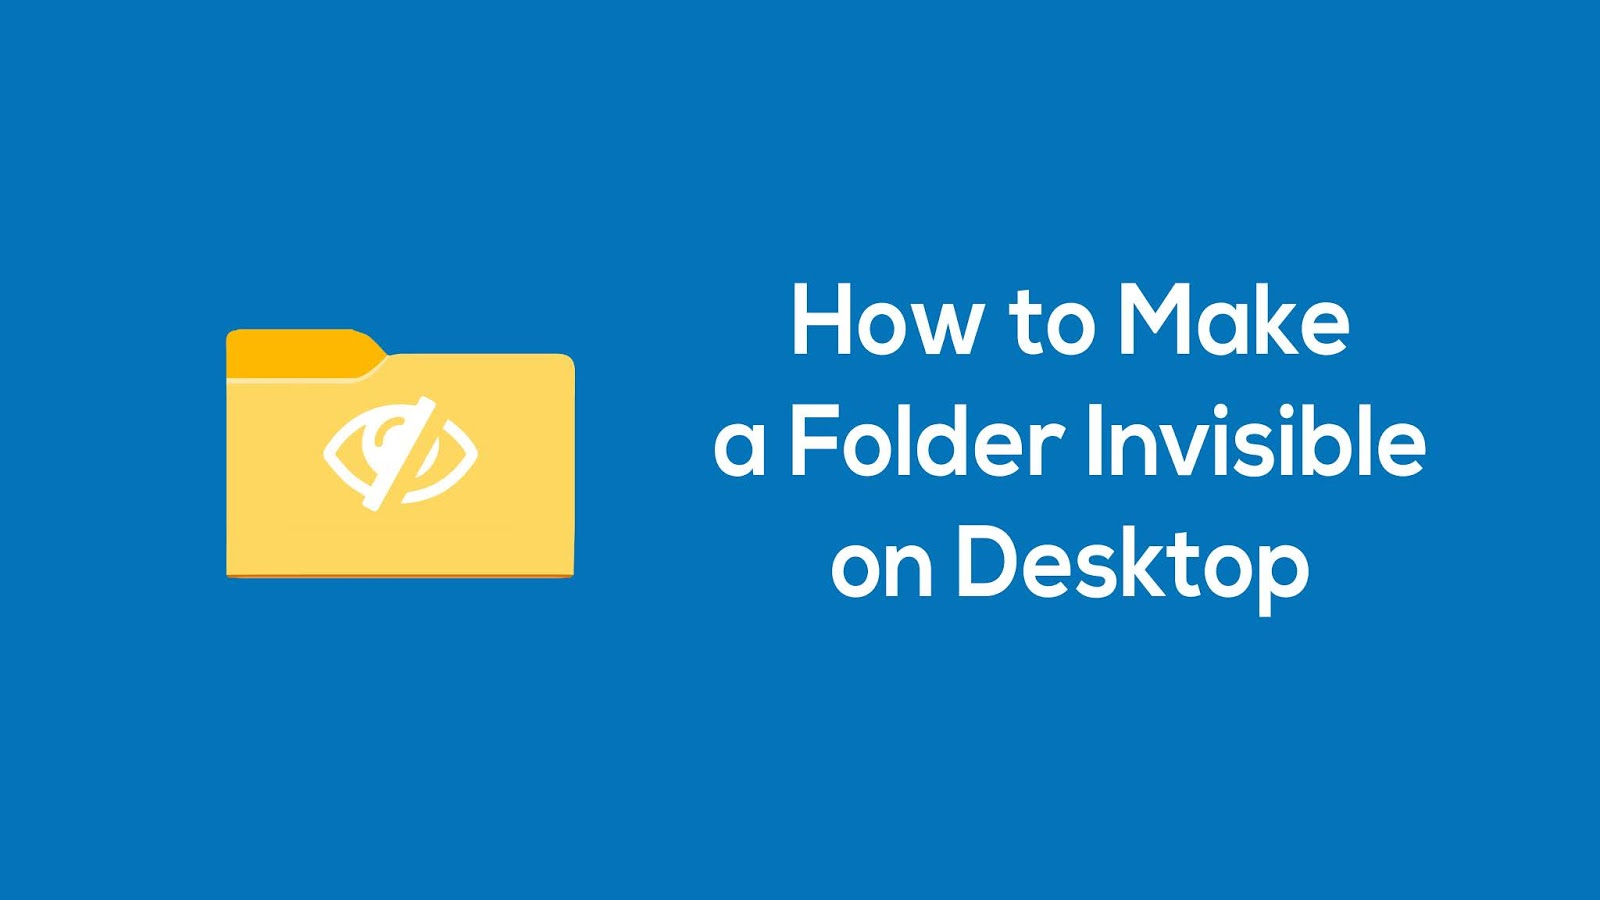 How to Make a Folder Invisible on Desktop